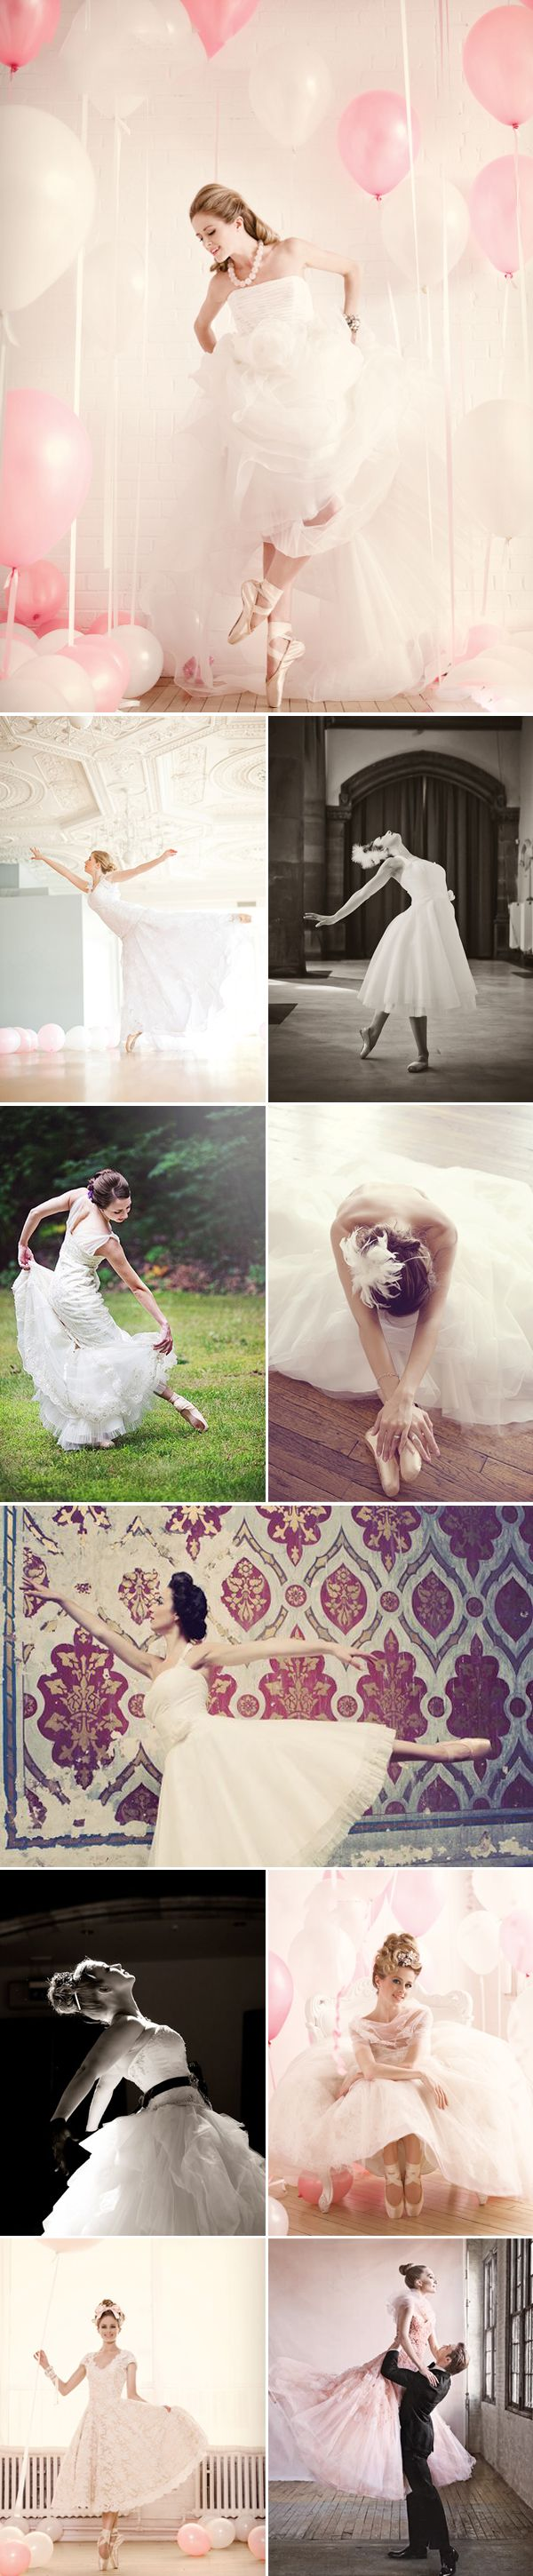 Praise Wedding » Wedding Inspiration and Planning » Sweet Ballerina Brides